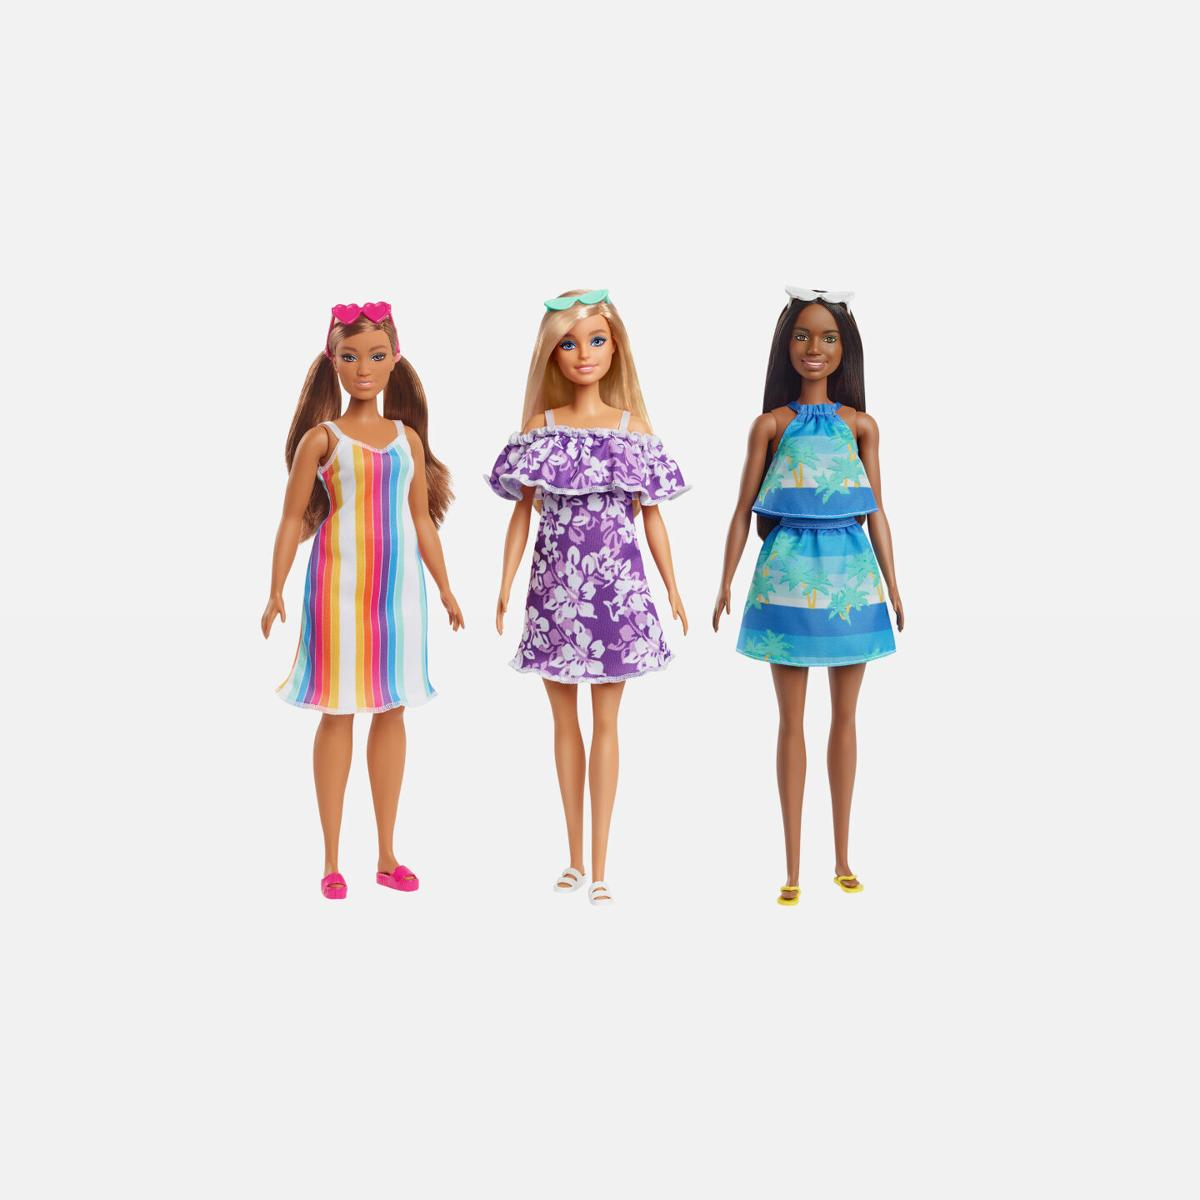 These new Barbies are made from ocean-bound plastic